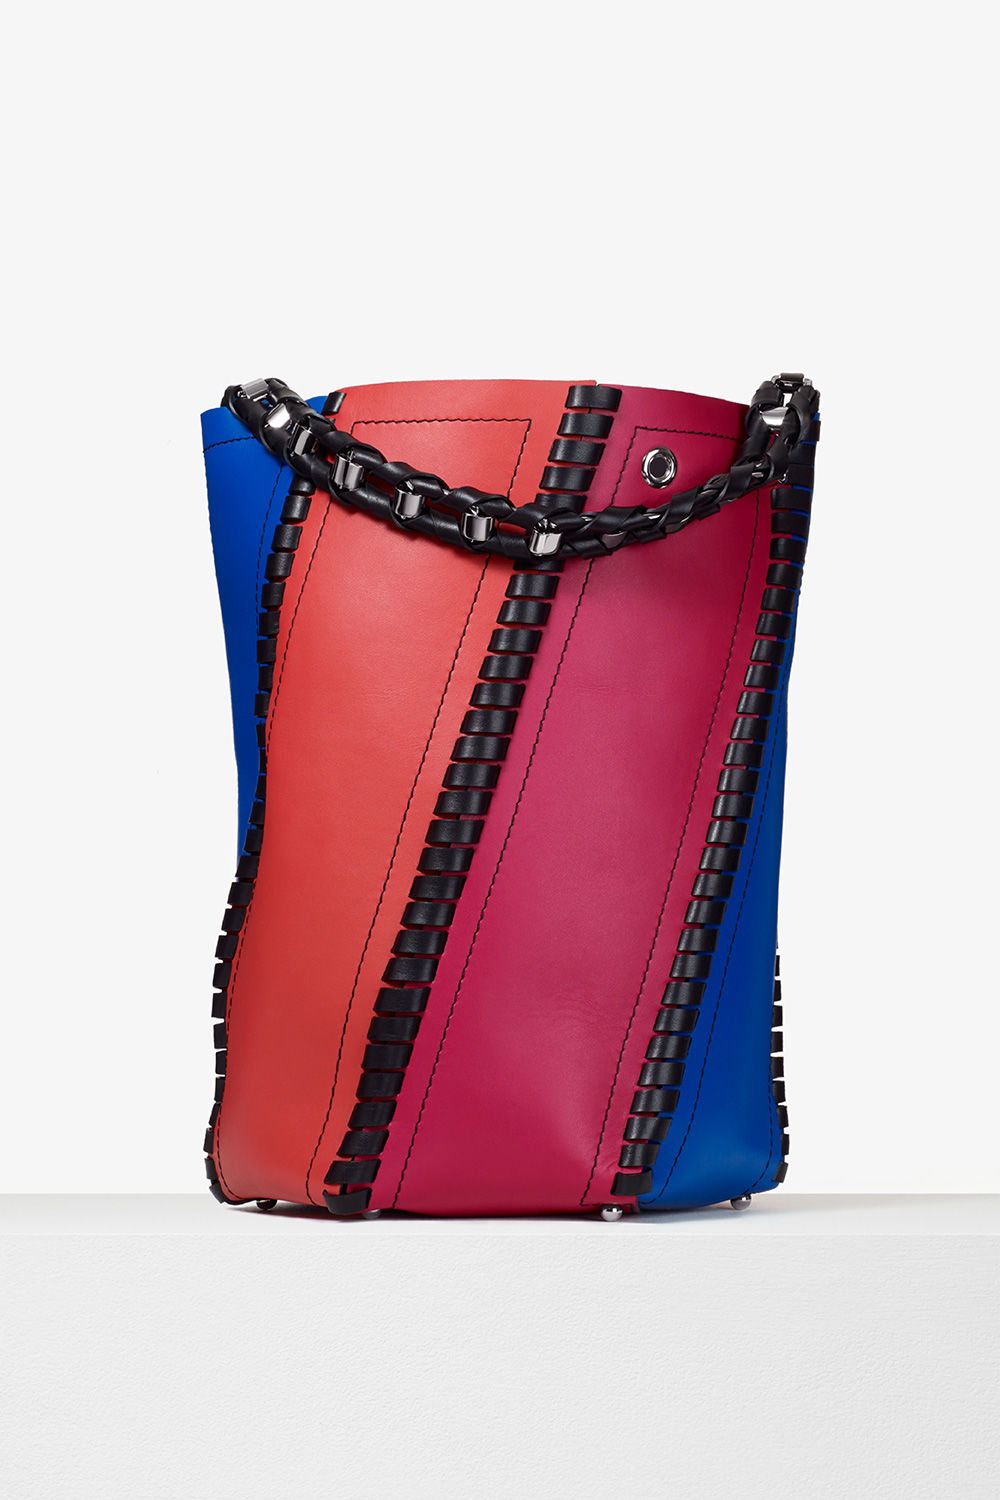 proenza schouler pre spring 2017 memphis blue geranium magenta smooth leather color block large hex whipstitch bucket bag